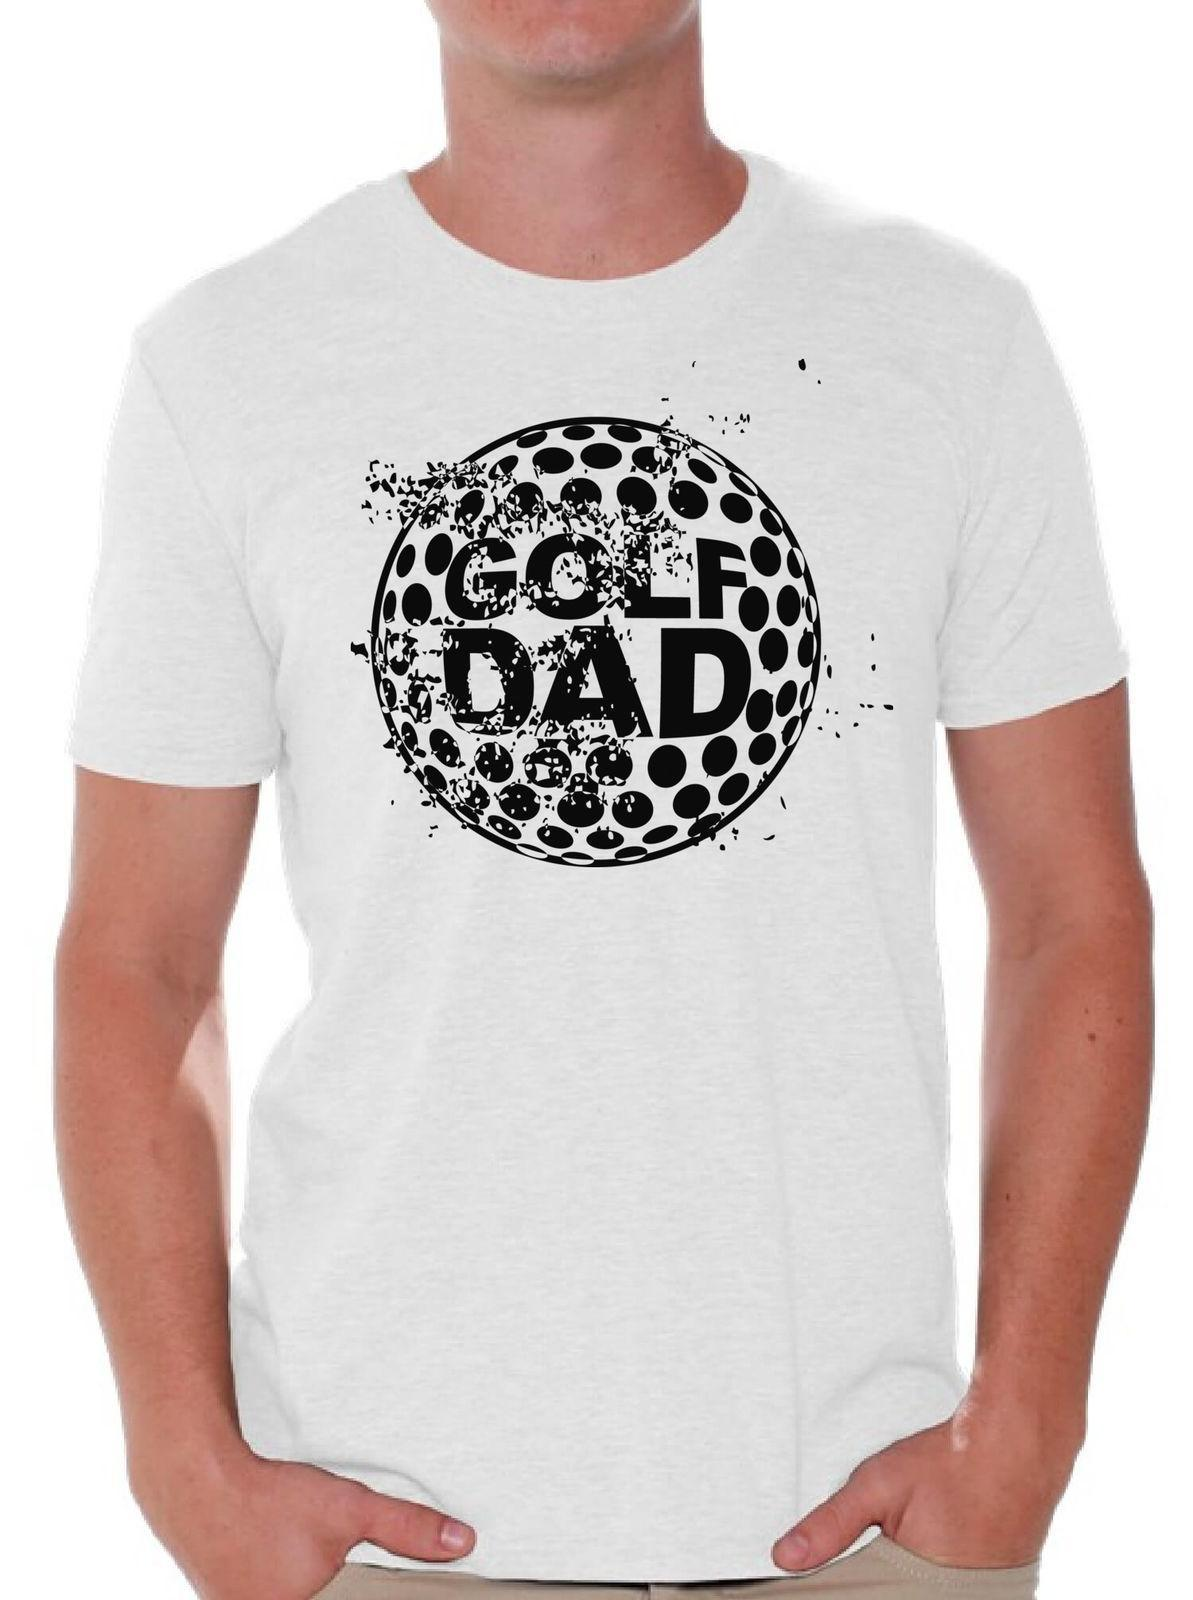 31c44629 Golf Dad T Shirt Tops Father'S Day Gift For Dad Sport Dad Best Golfer  Latest T Shirt Design T Shirt Shopping Online From Linnan00003, $14.67|  DHgate.Com